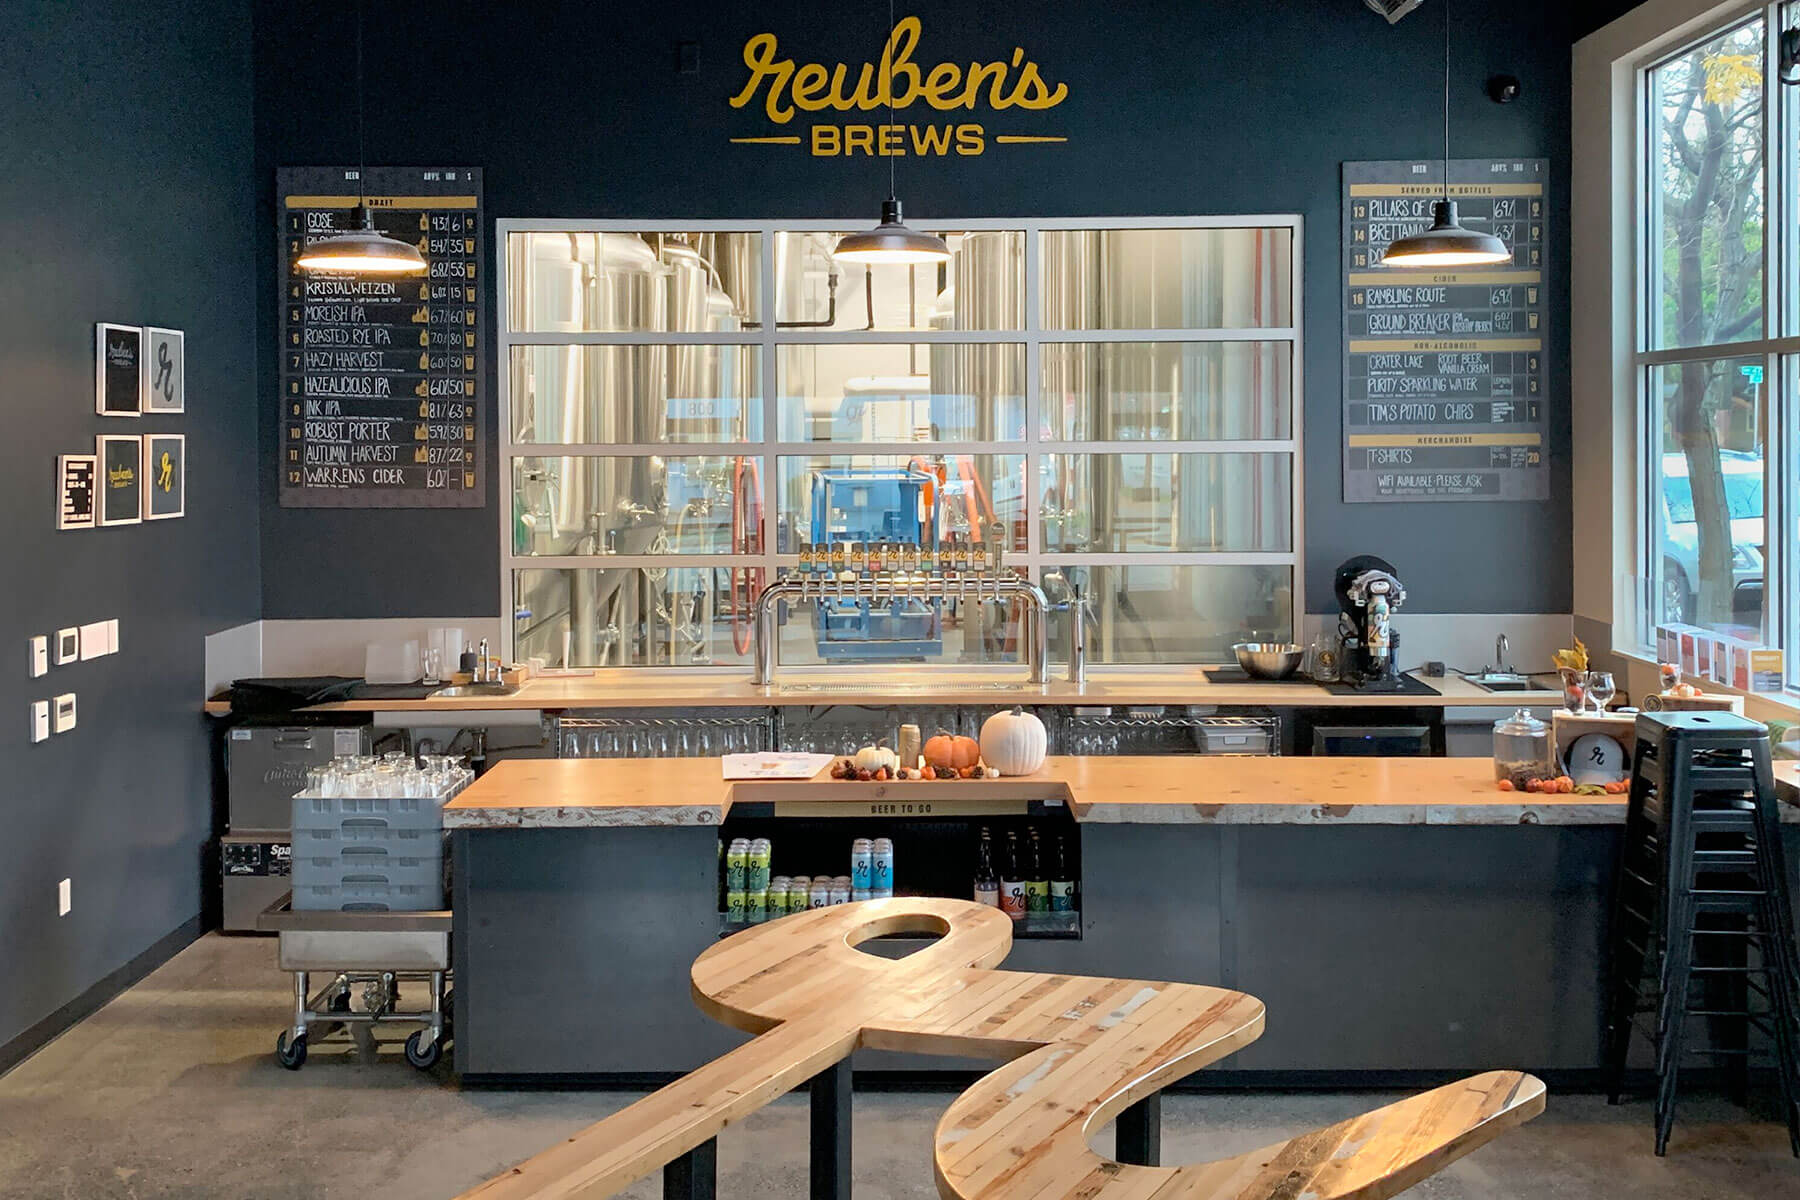 Inside the Reuben's Brews taproom in Seattle, Washington